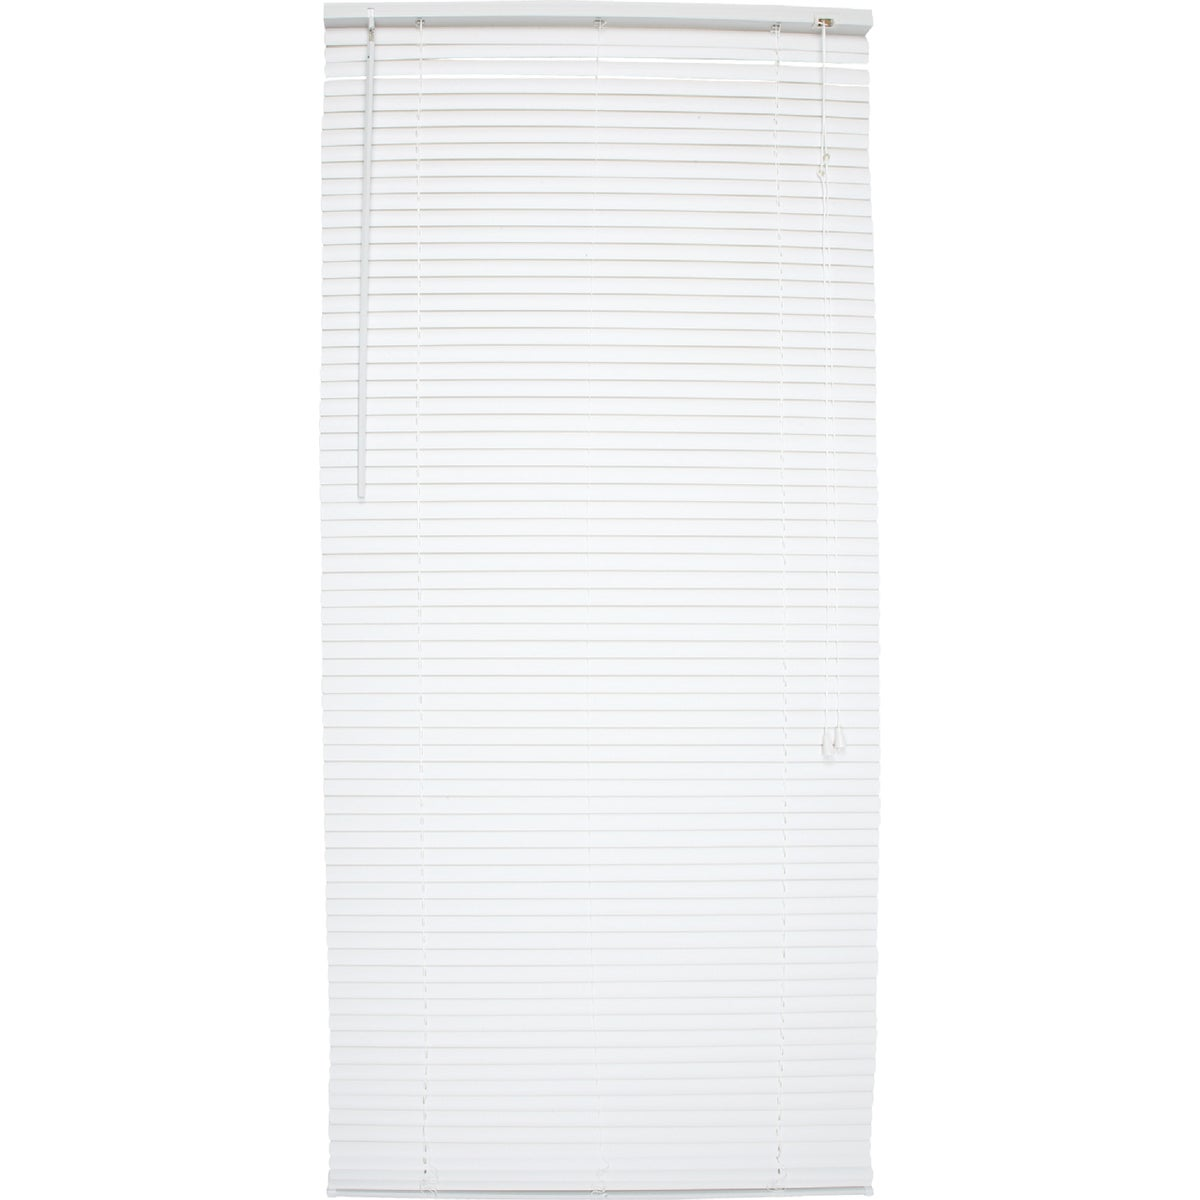 18X64 WHITE MINI BLIND